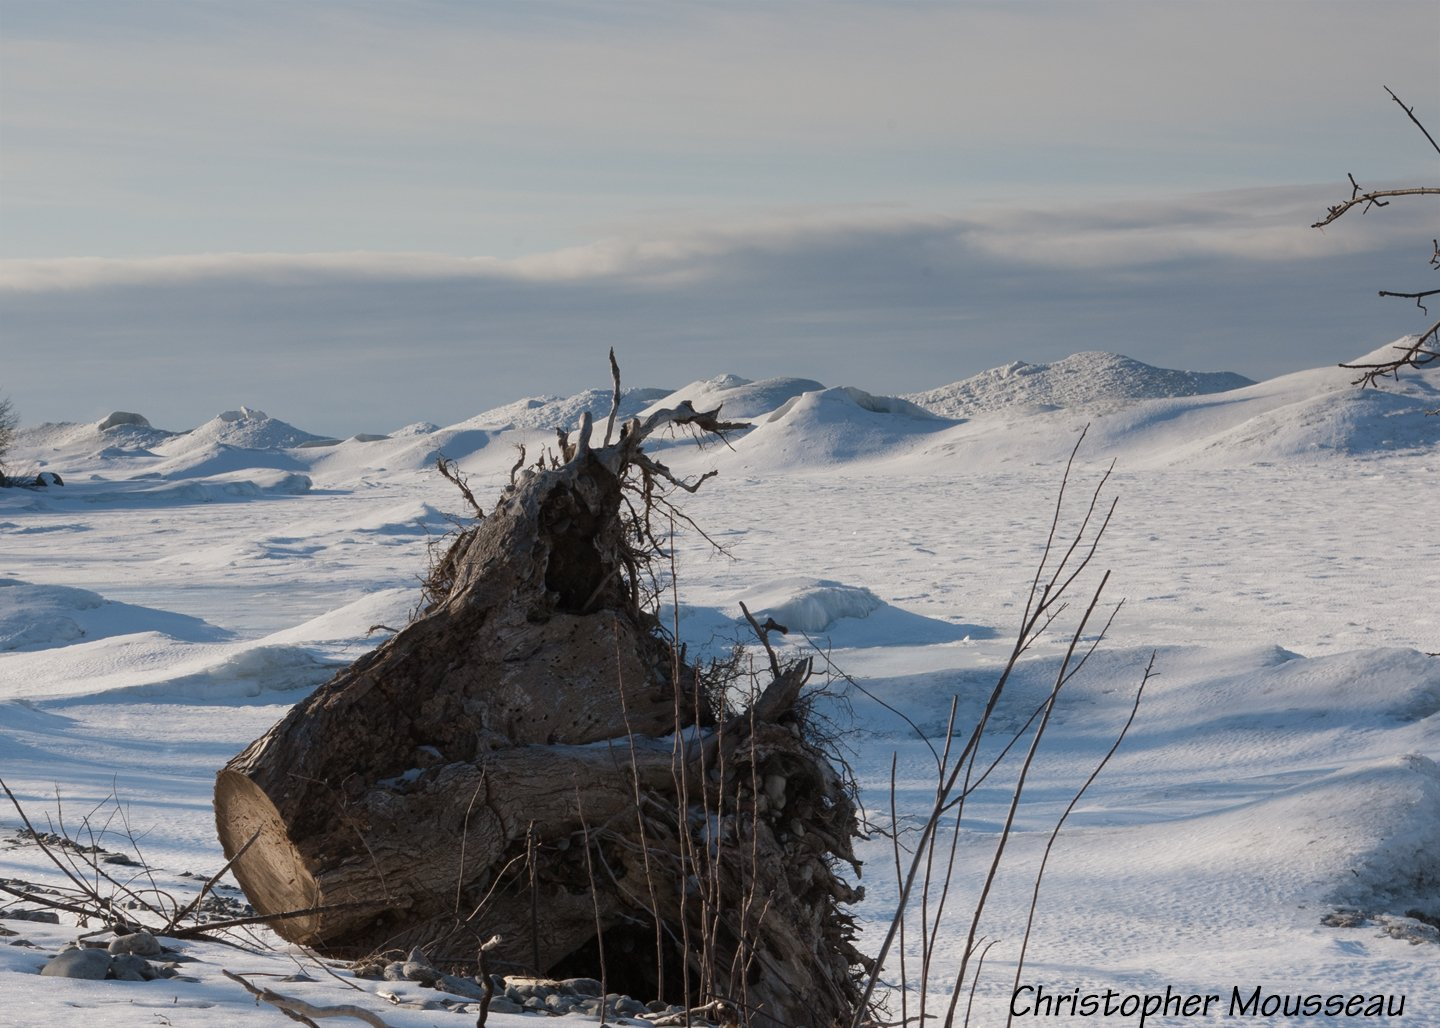 Tree stum laying on ice and snow covered beach; pig piles of ice blown to shore in background.